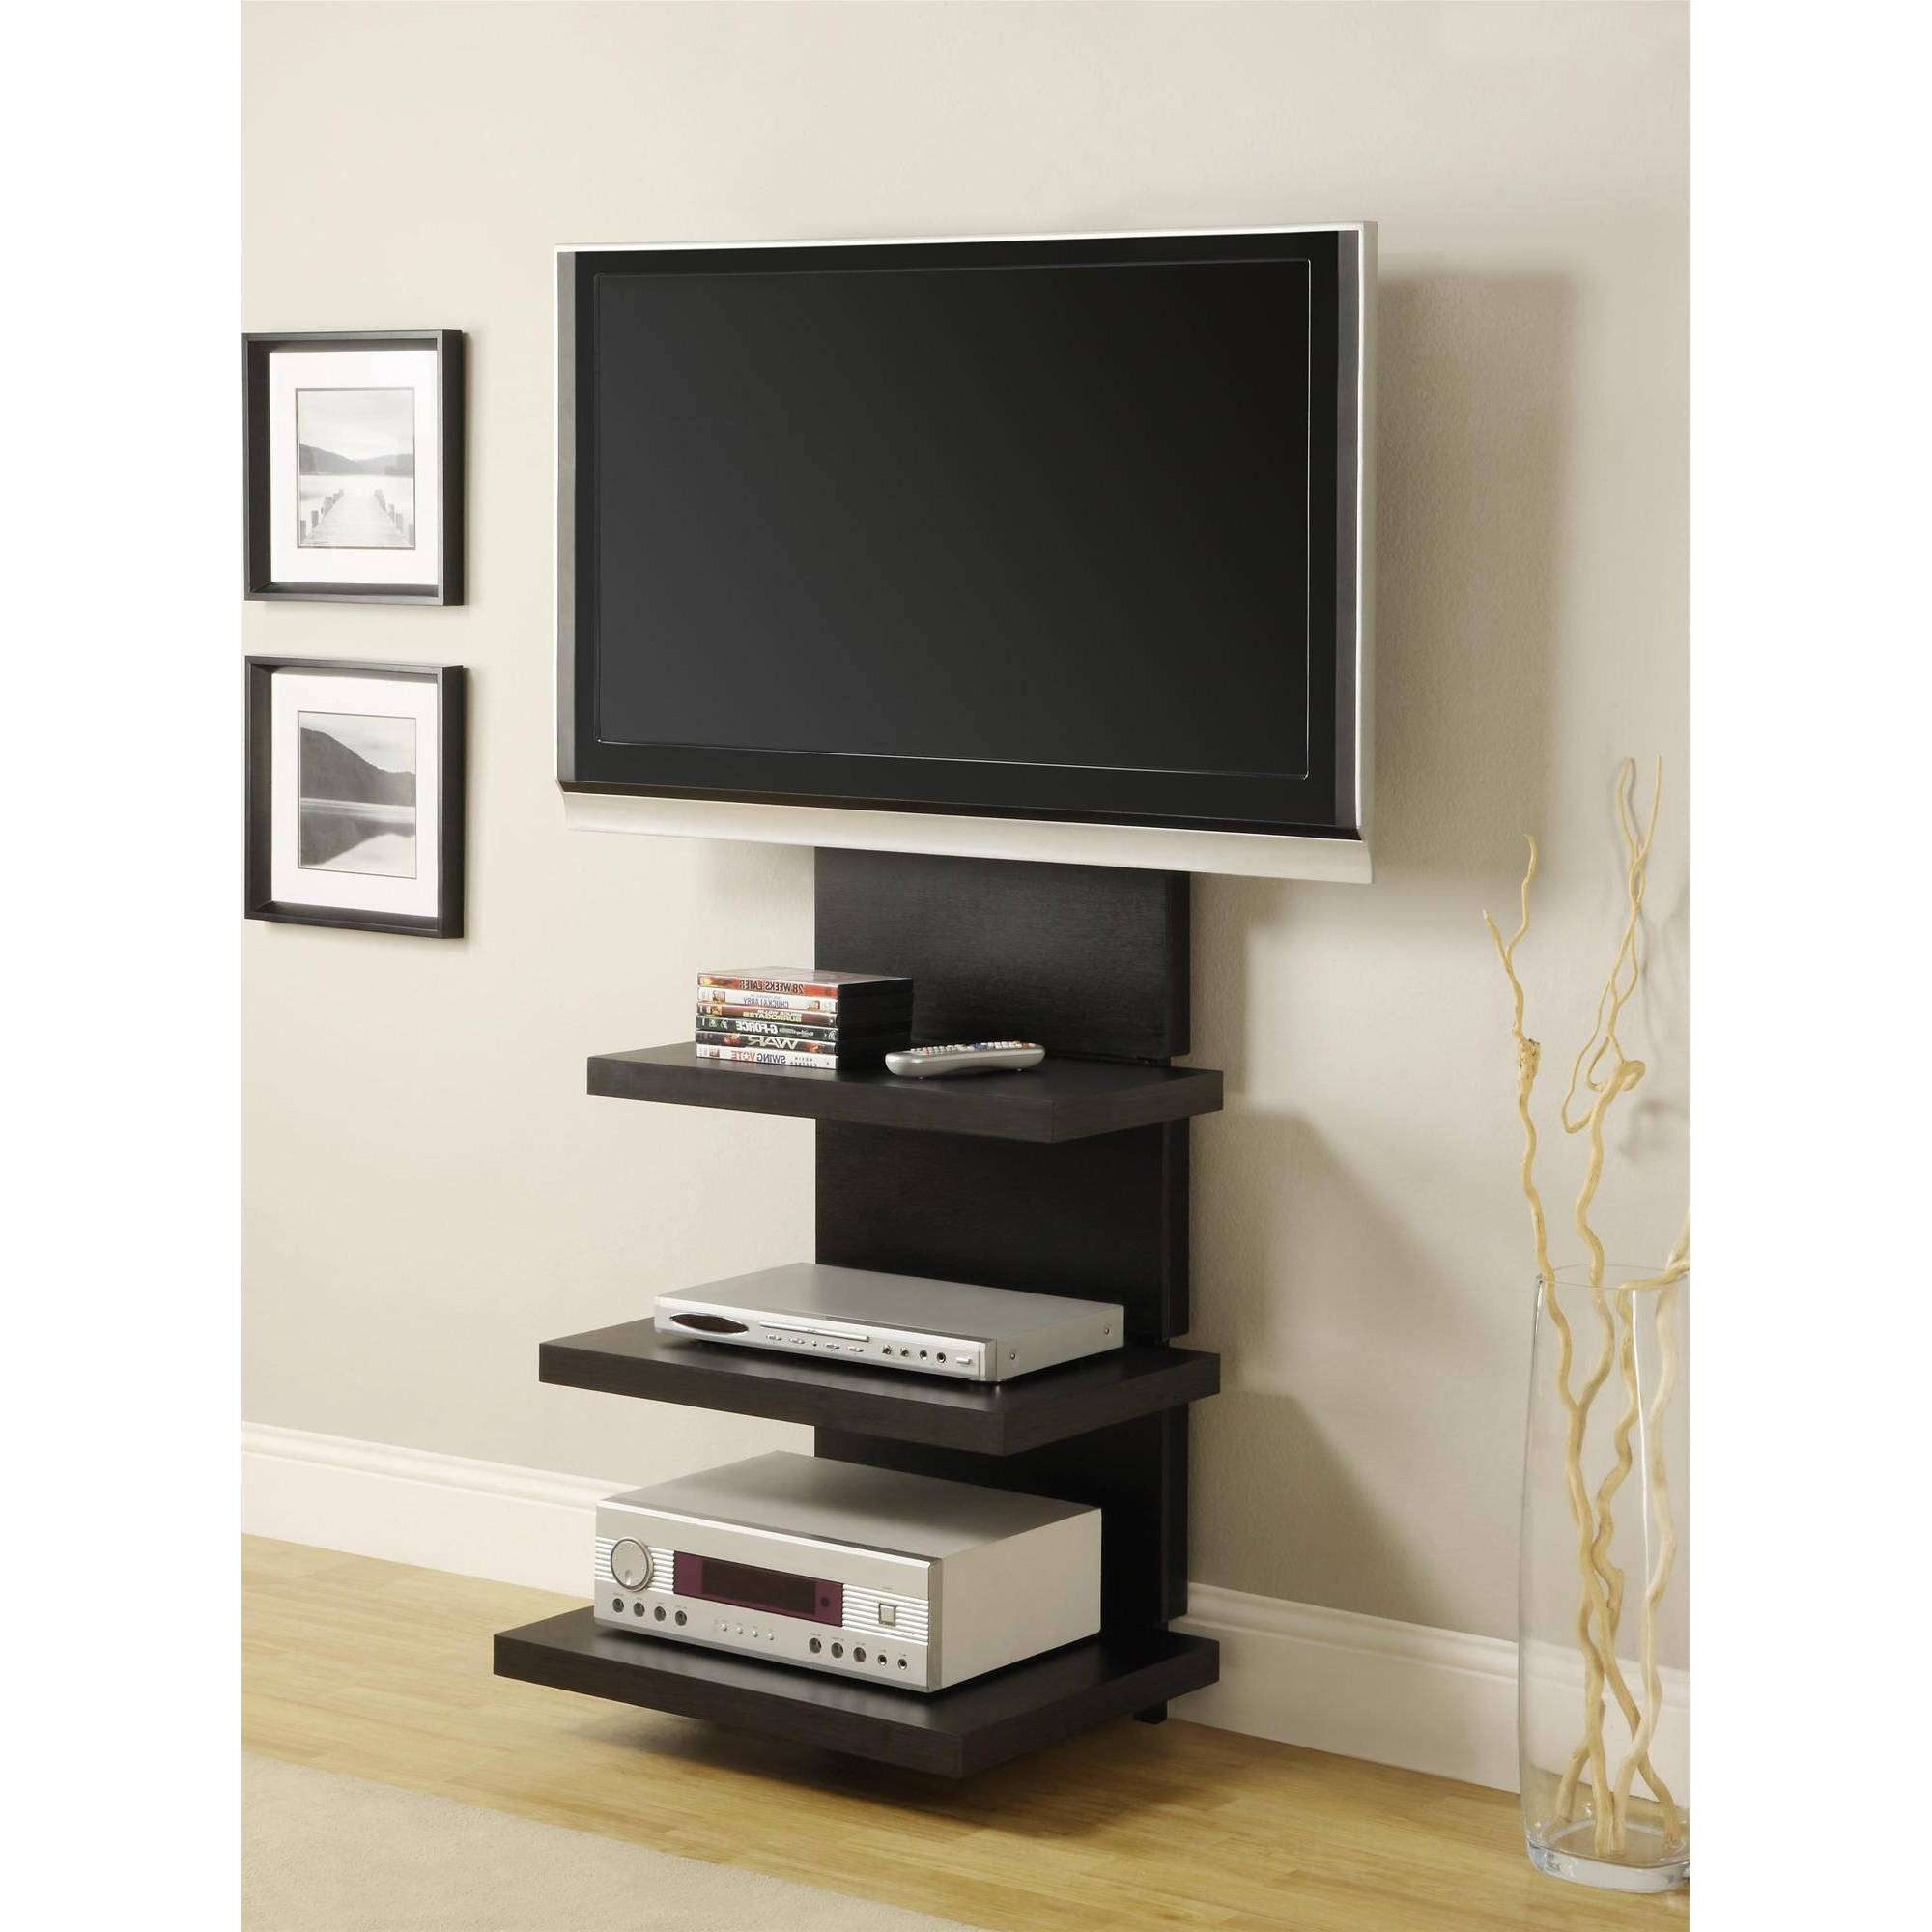 Tv : Small Tv Stands On Wheels Perfect Small White Tv Stand On Intended For Small Tv Stands On Wheels (View 15 of 20)